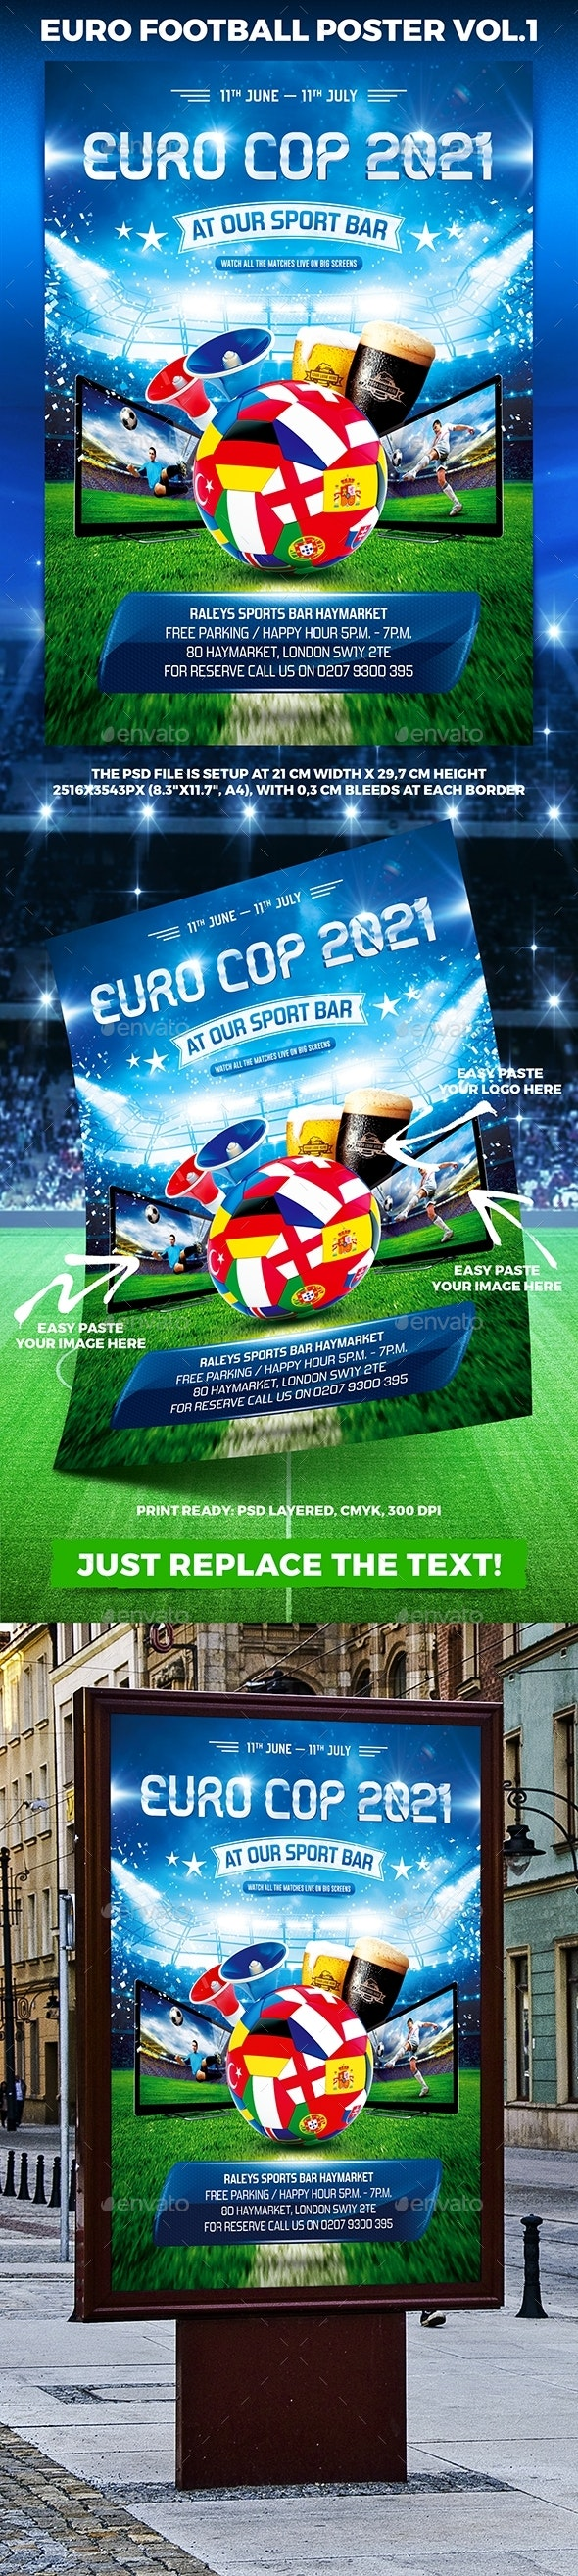 Euro 2021 Poster vol.1 - Sports Events